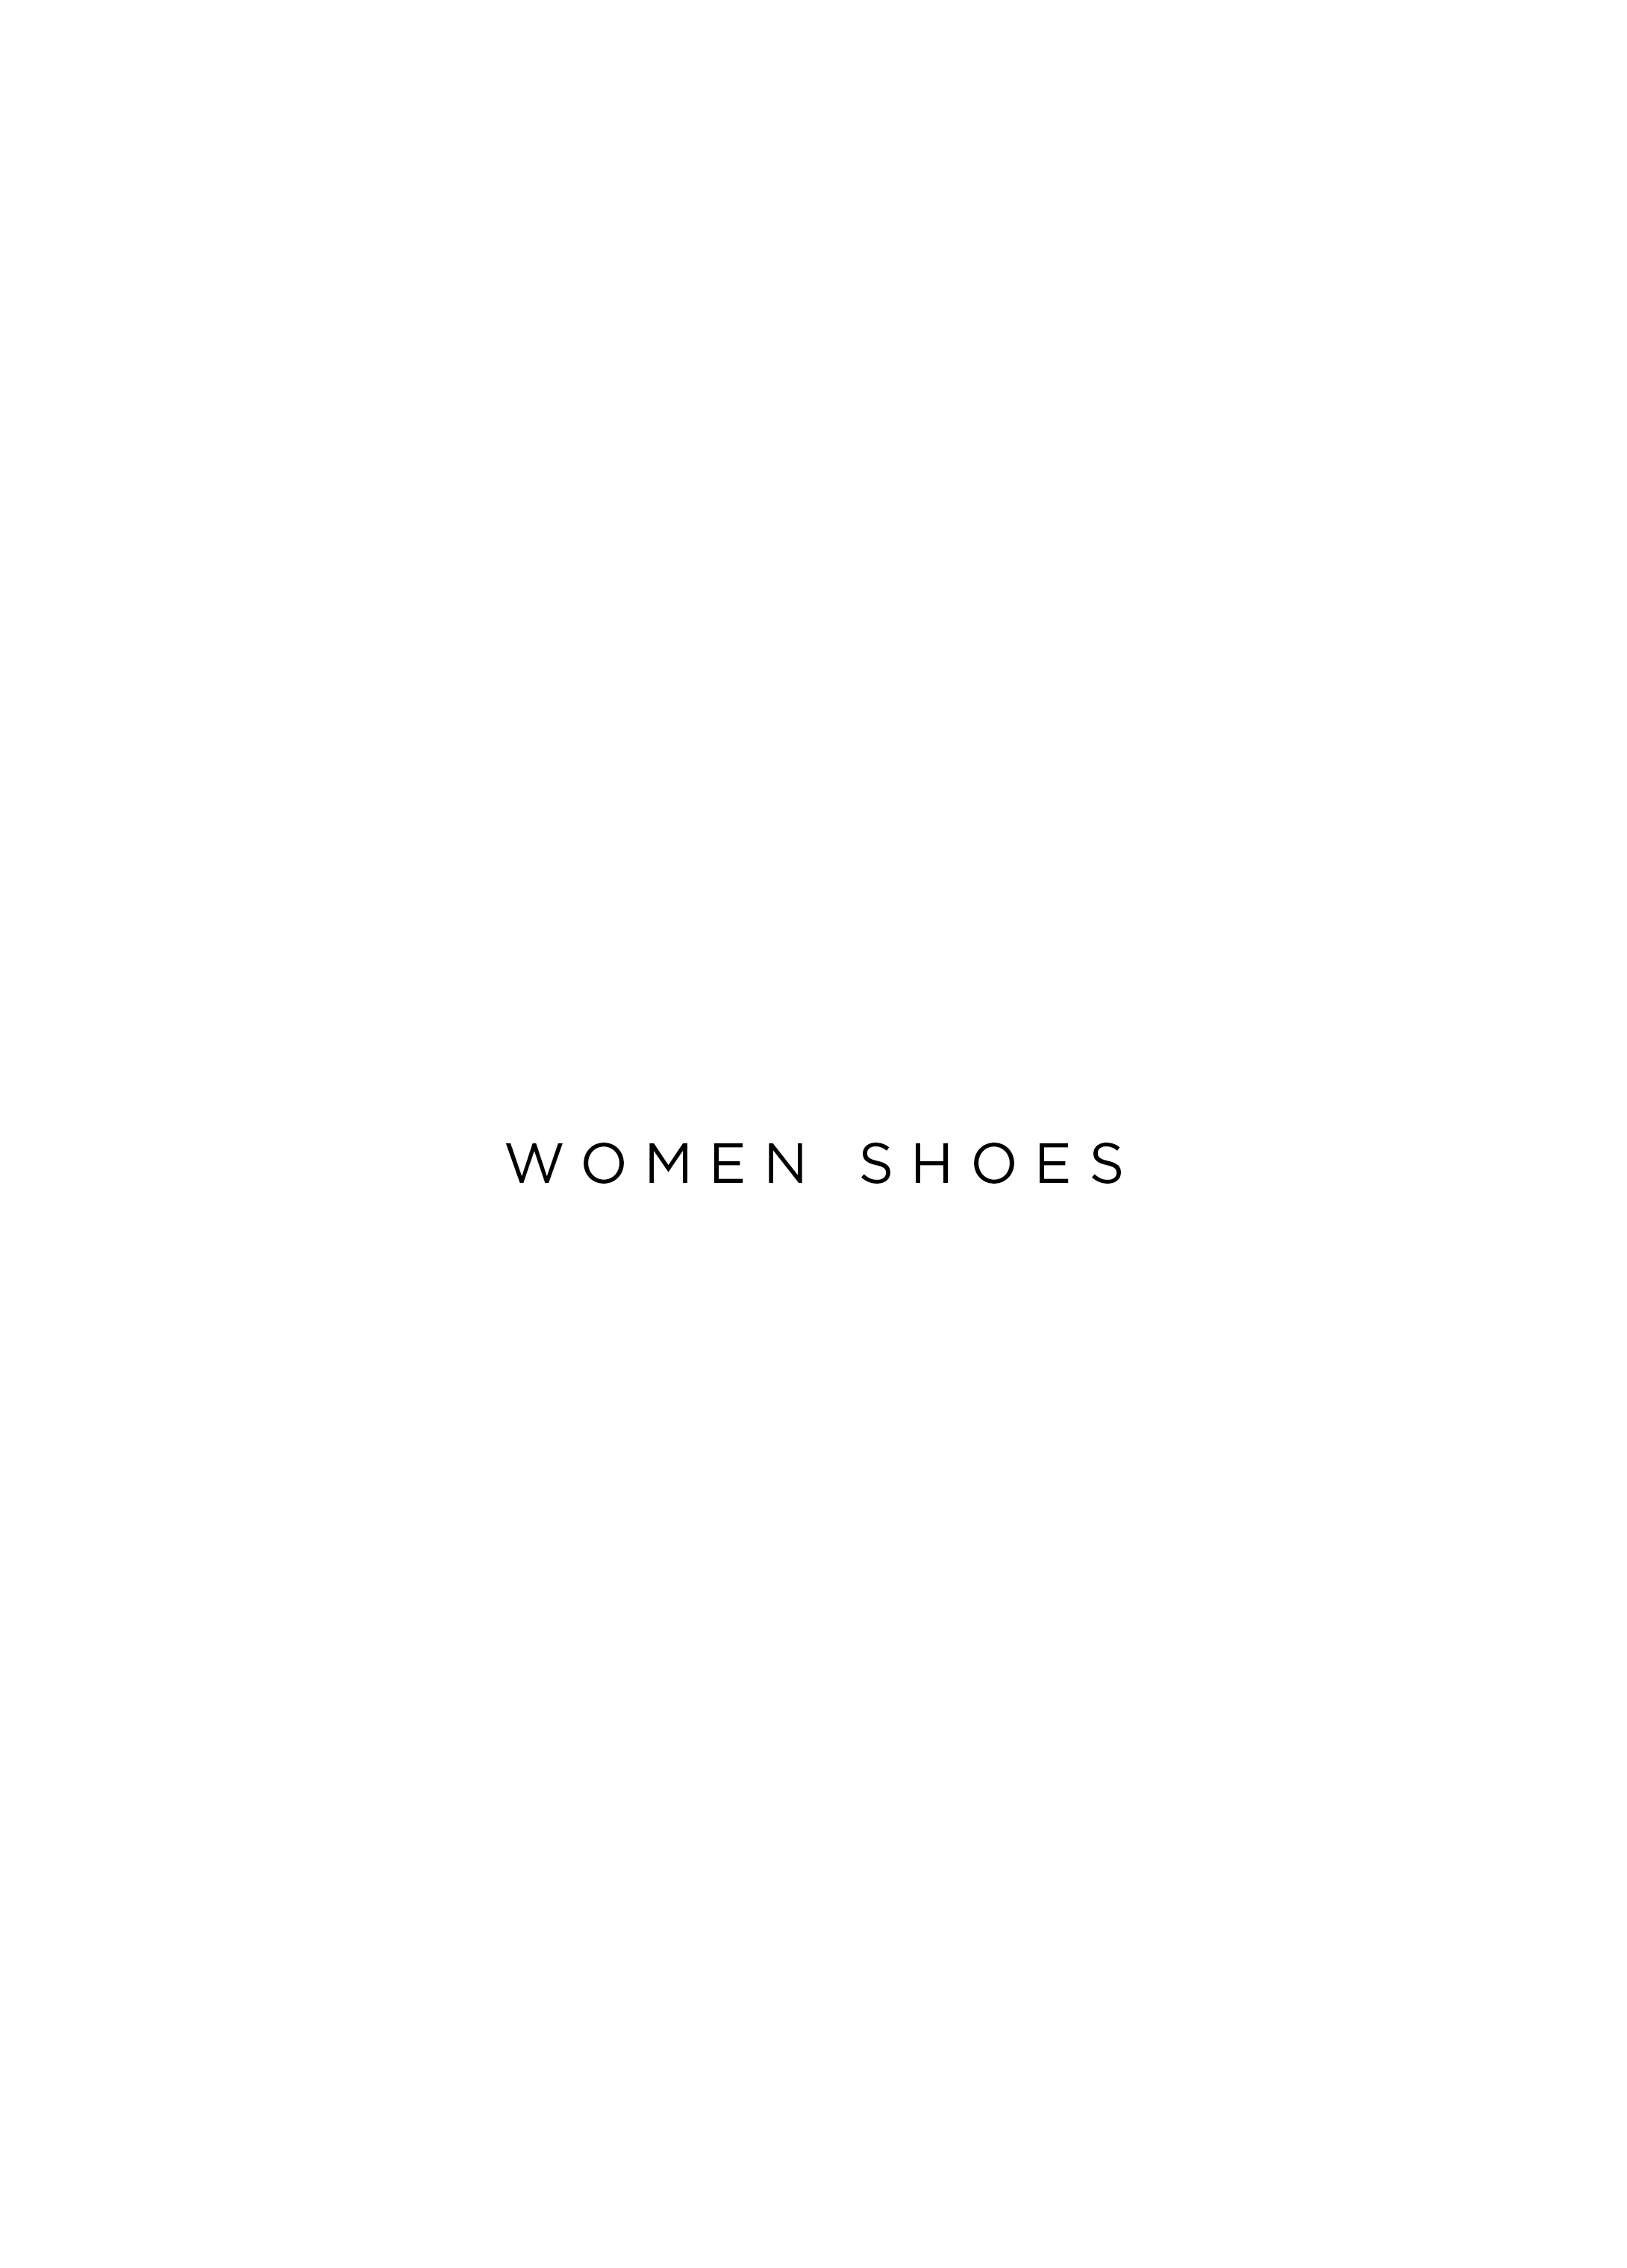 Women shoes